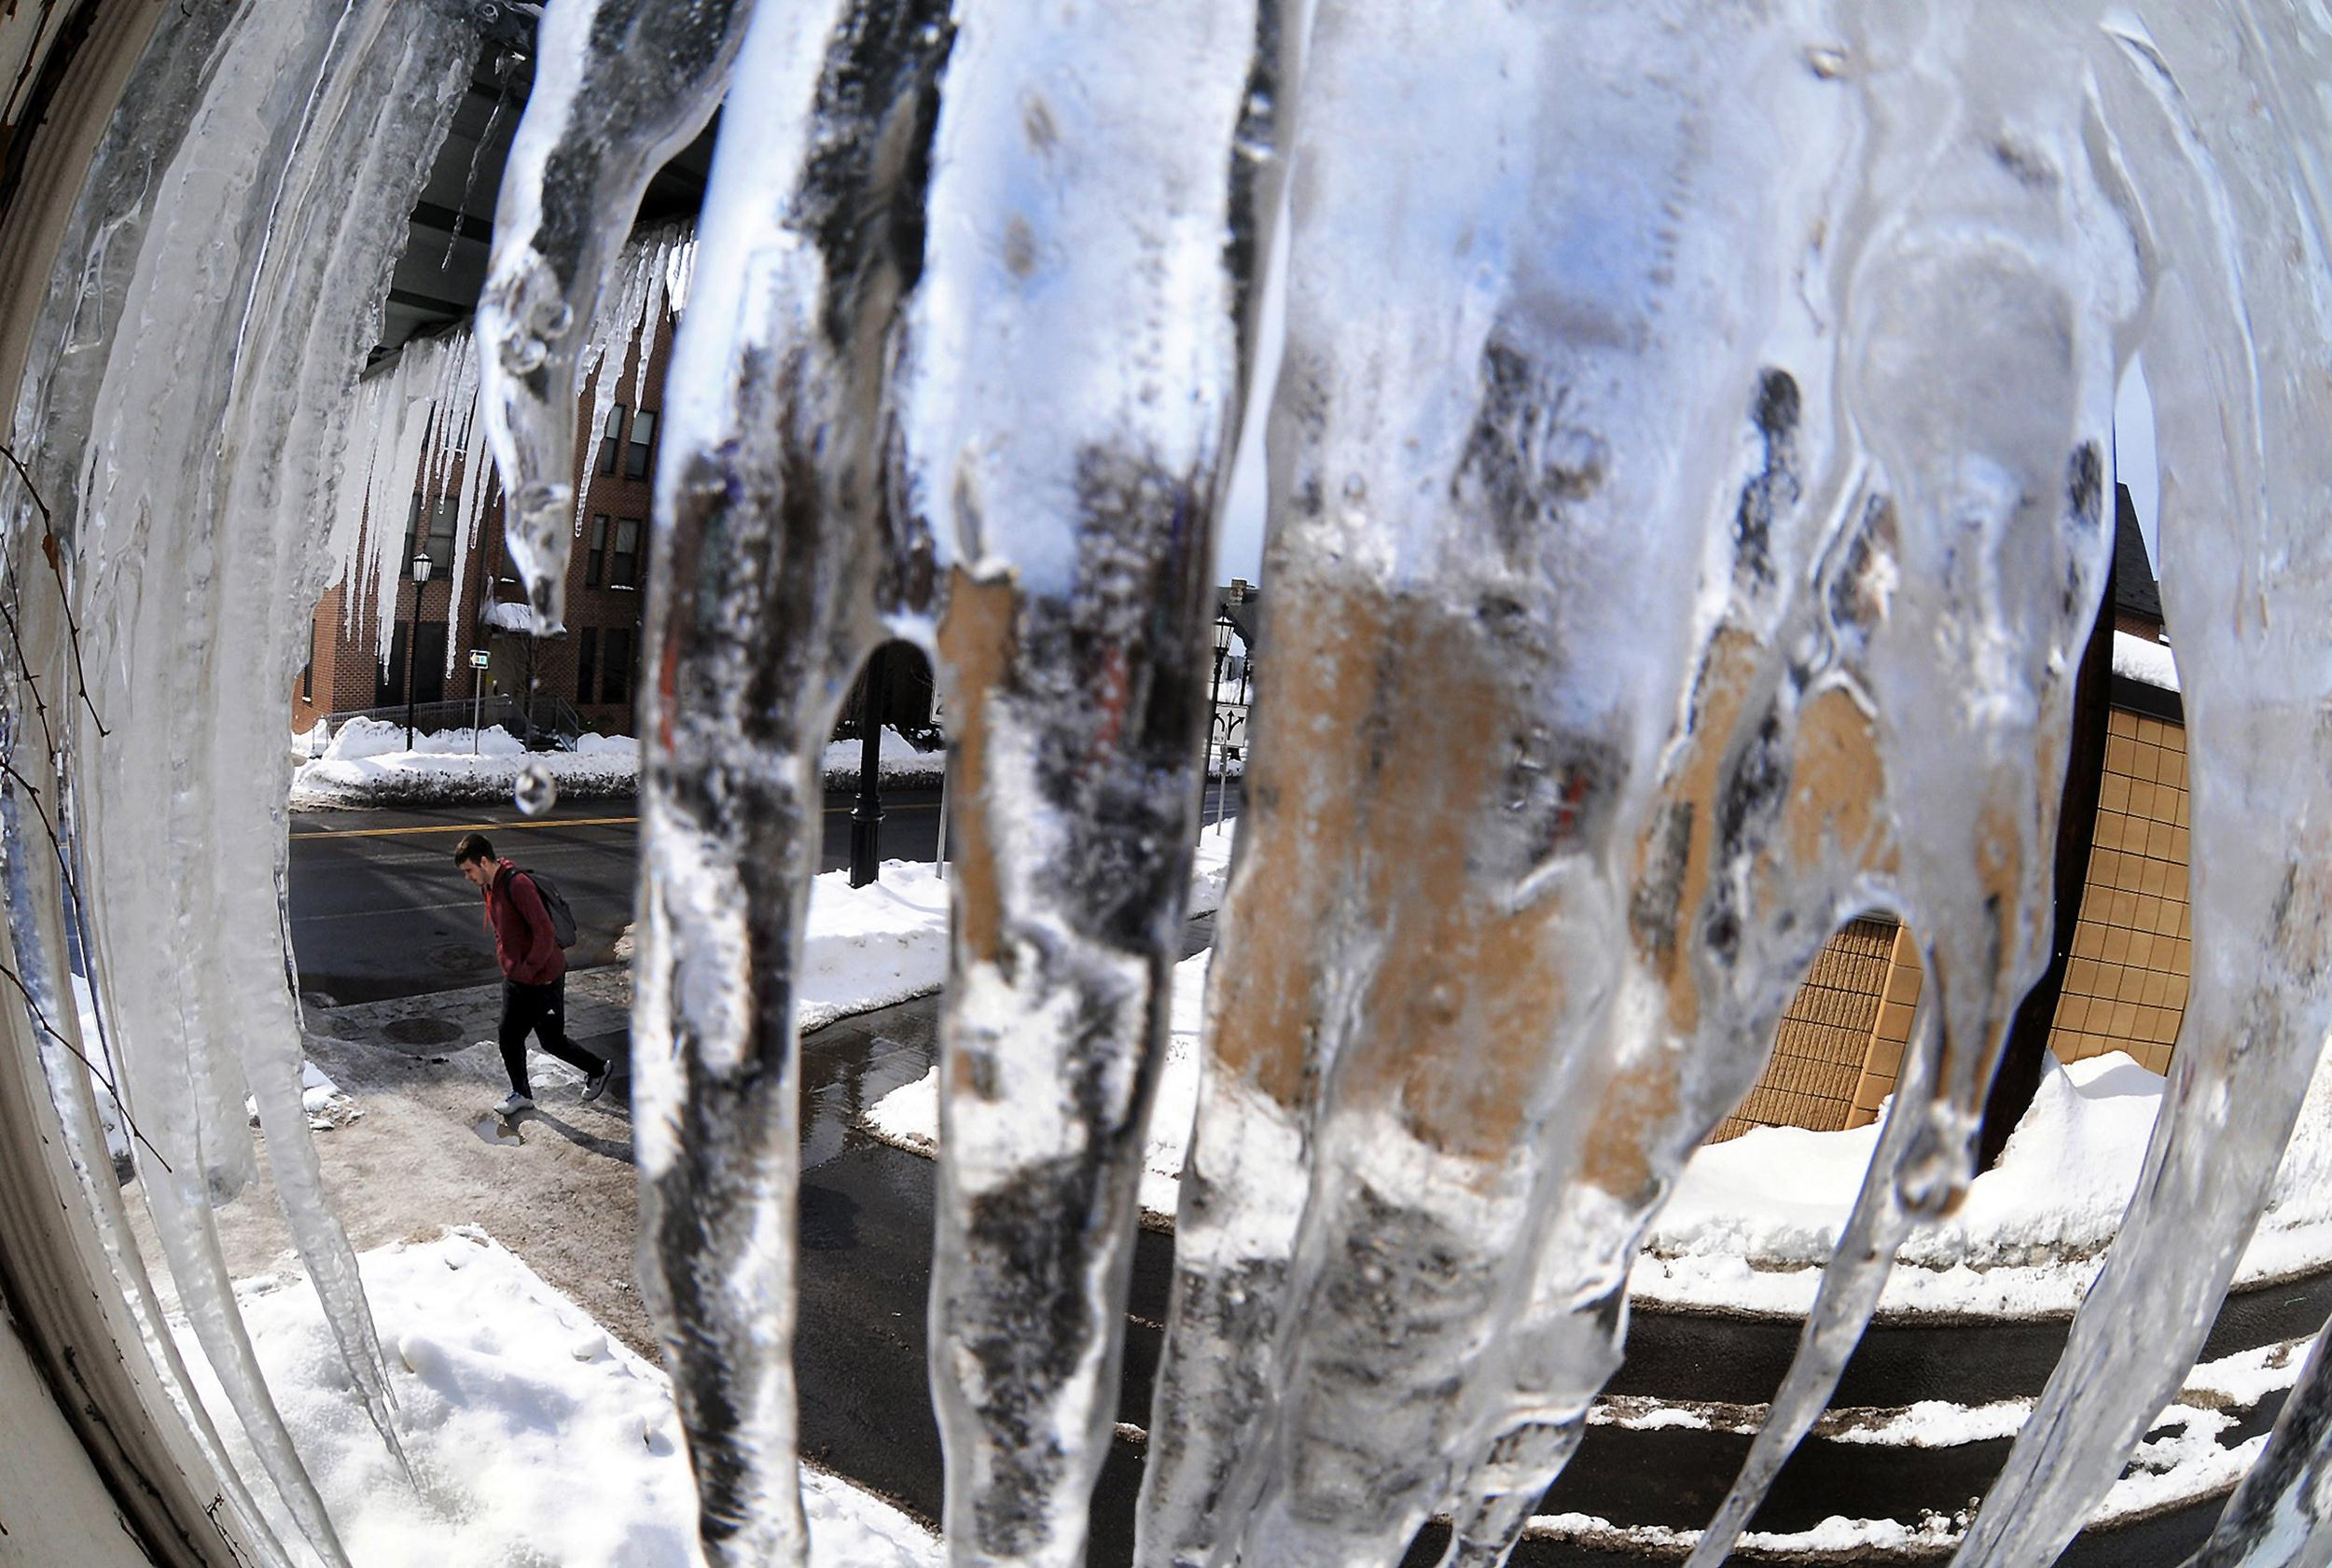 Image: A pedestrian passes near a cluster of slowly melting icicle's in downtown Scranton, Pa.